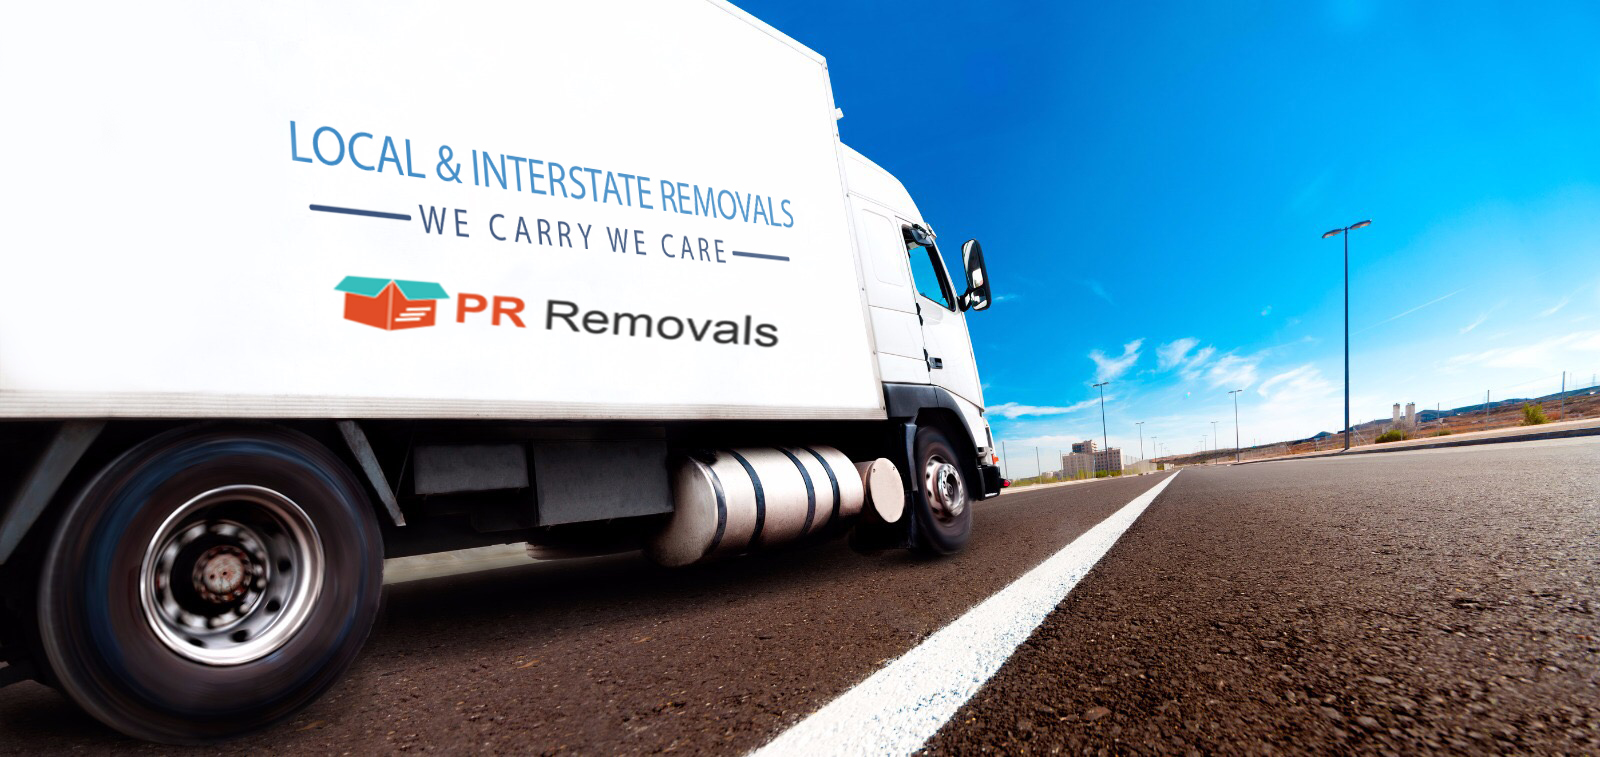 Removalists Interstate | Interstate Removals Melbourne | PR Removals 0452218700